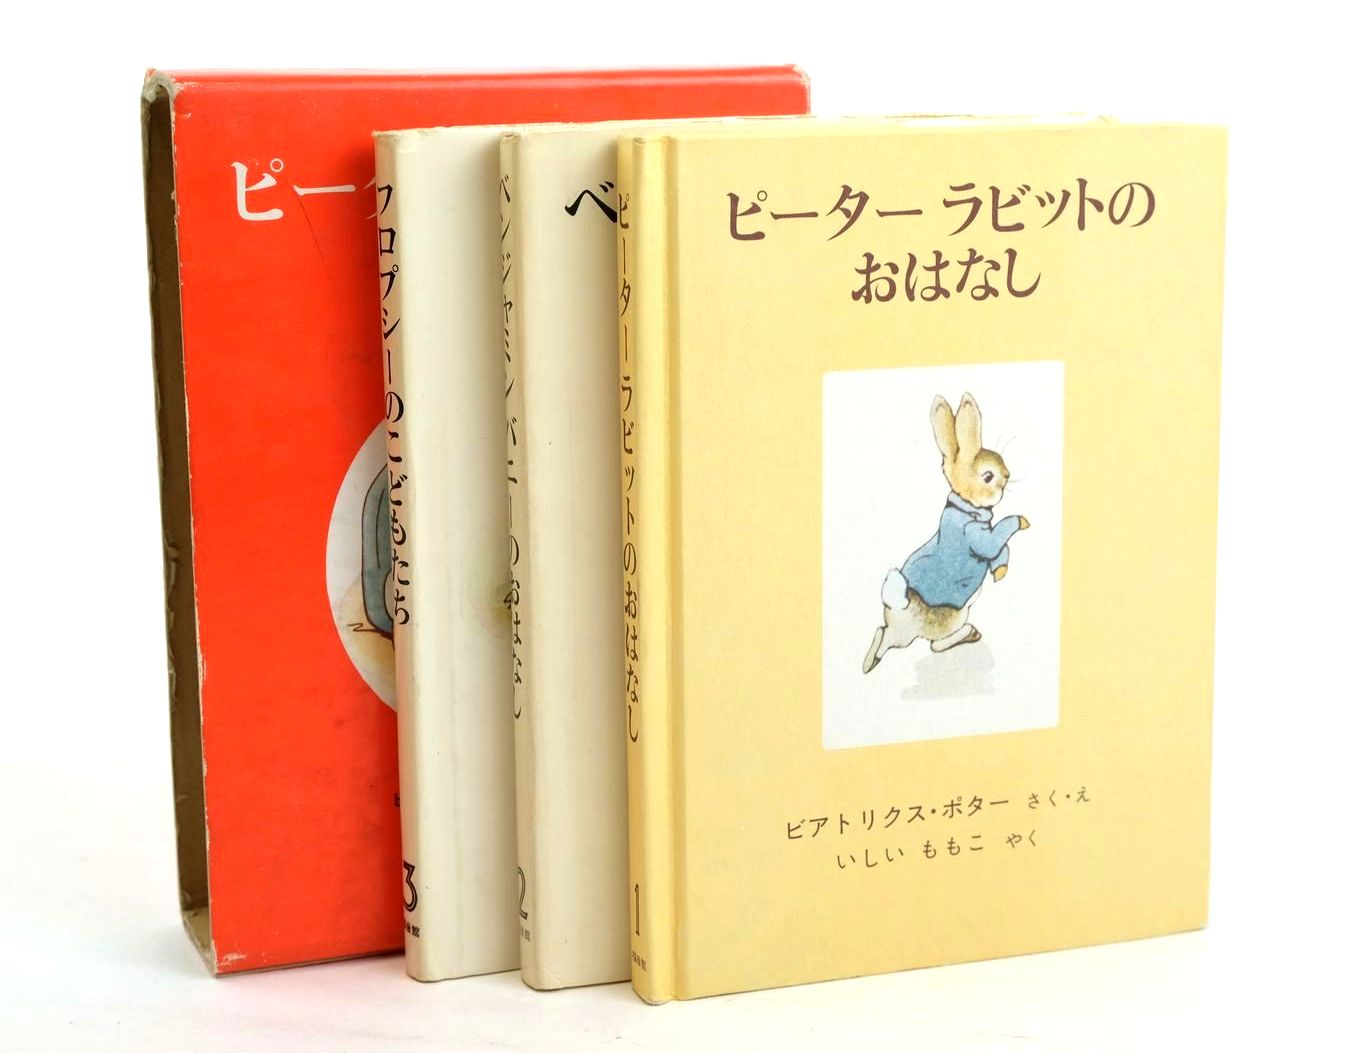 Photo of PETER RABBIT BOX SET 1 (JAPANESE) written by Potter, Beatrix illustrated by Potter, Beatrix published by Fukuinkan-Shoten (STOCK CODE: 1319896)  for sale by Stella & Rose's Books